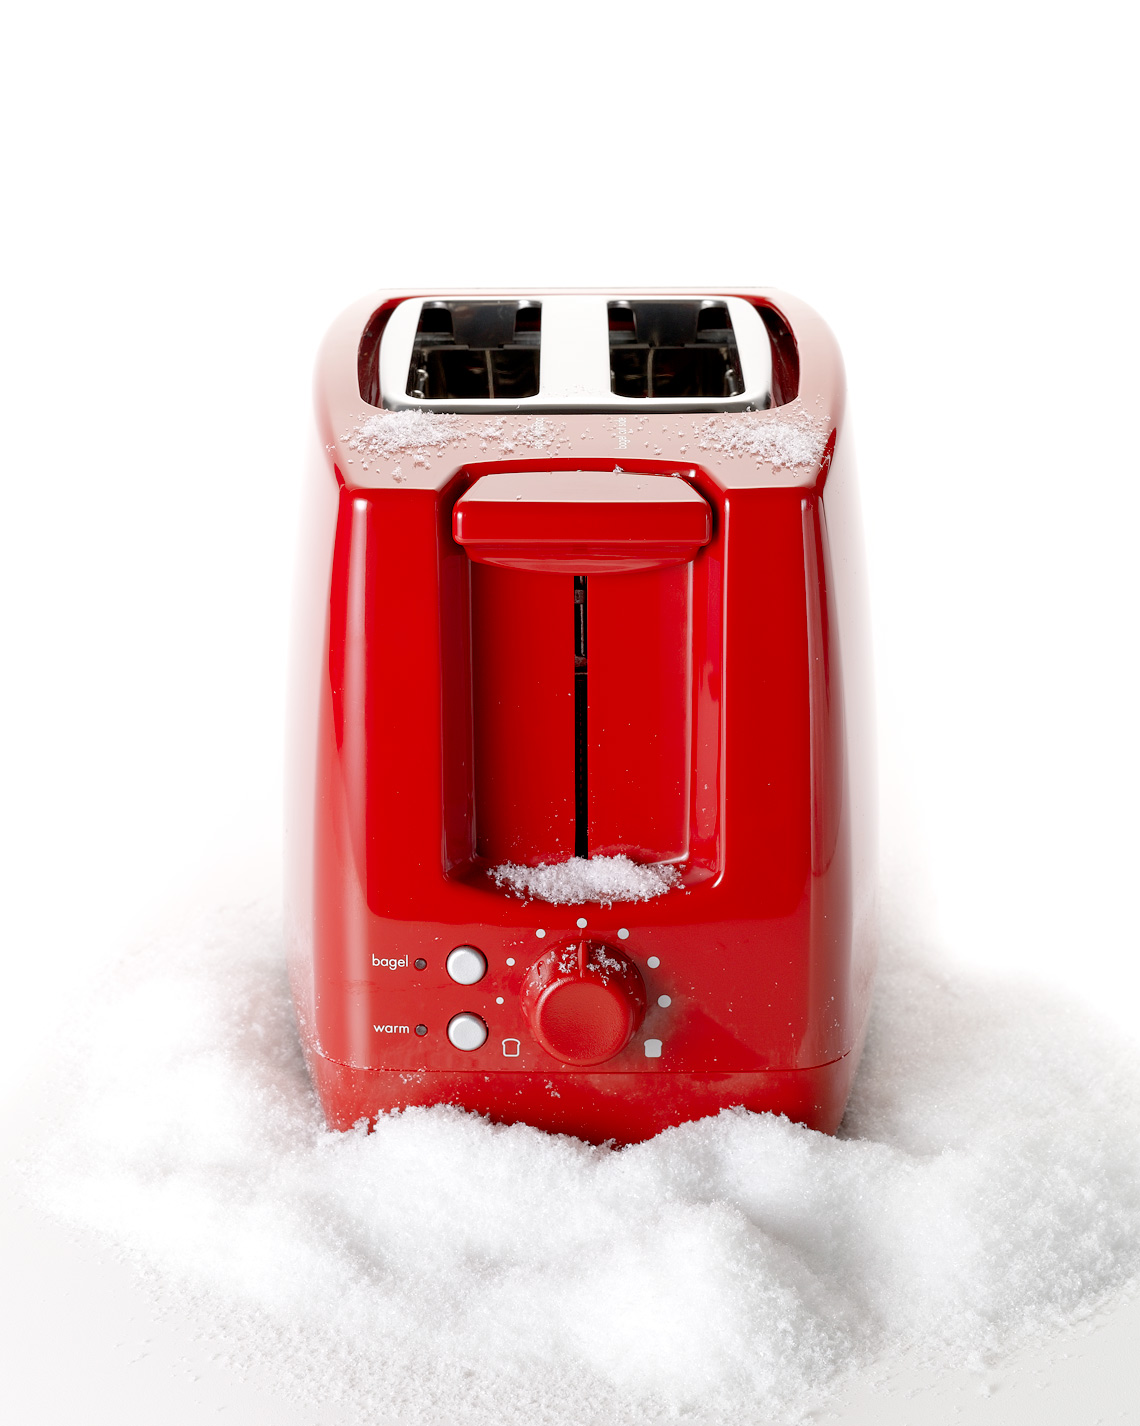 KitchenaidToaster_00009-FINAL